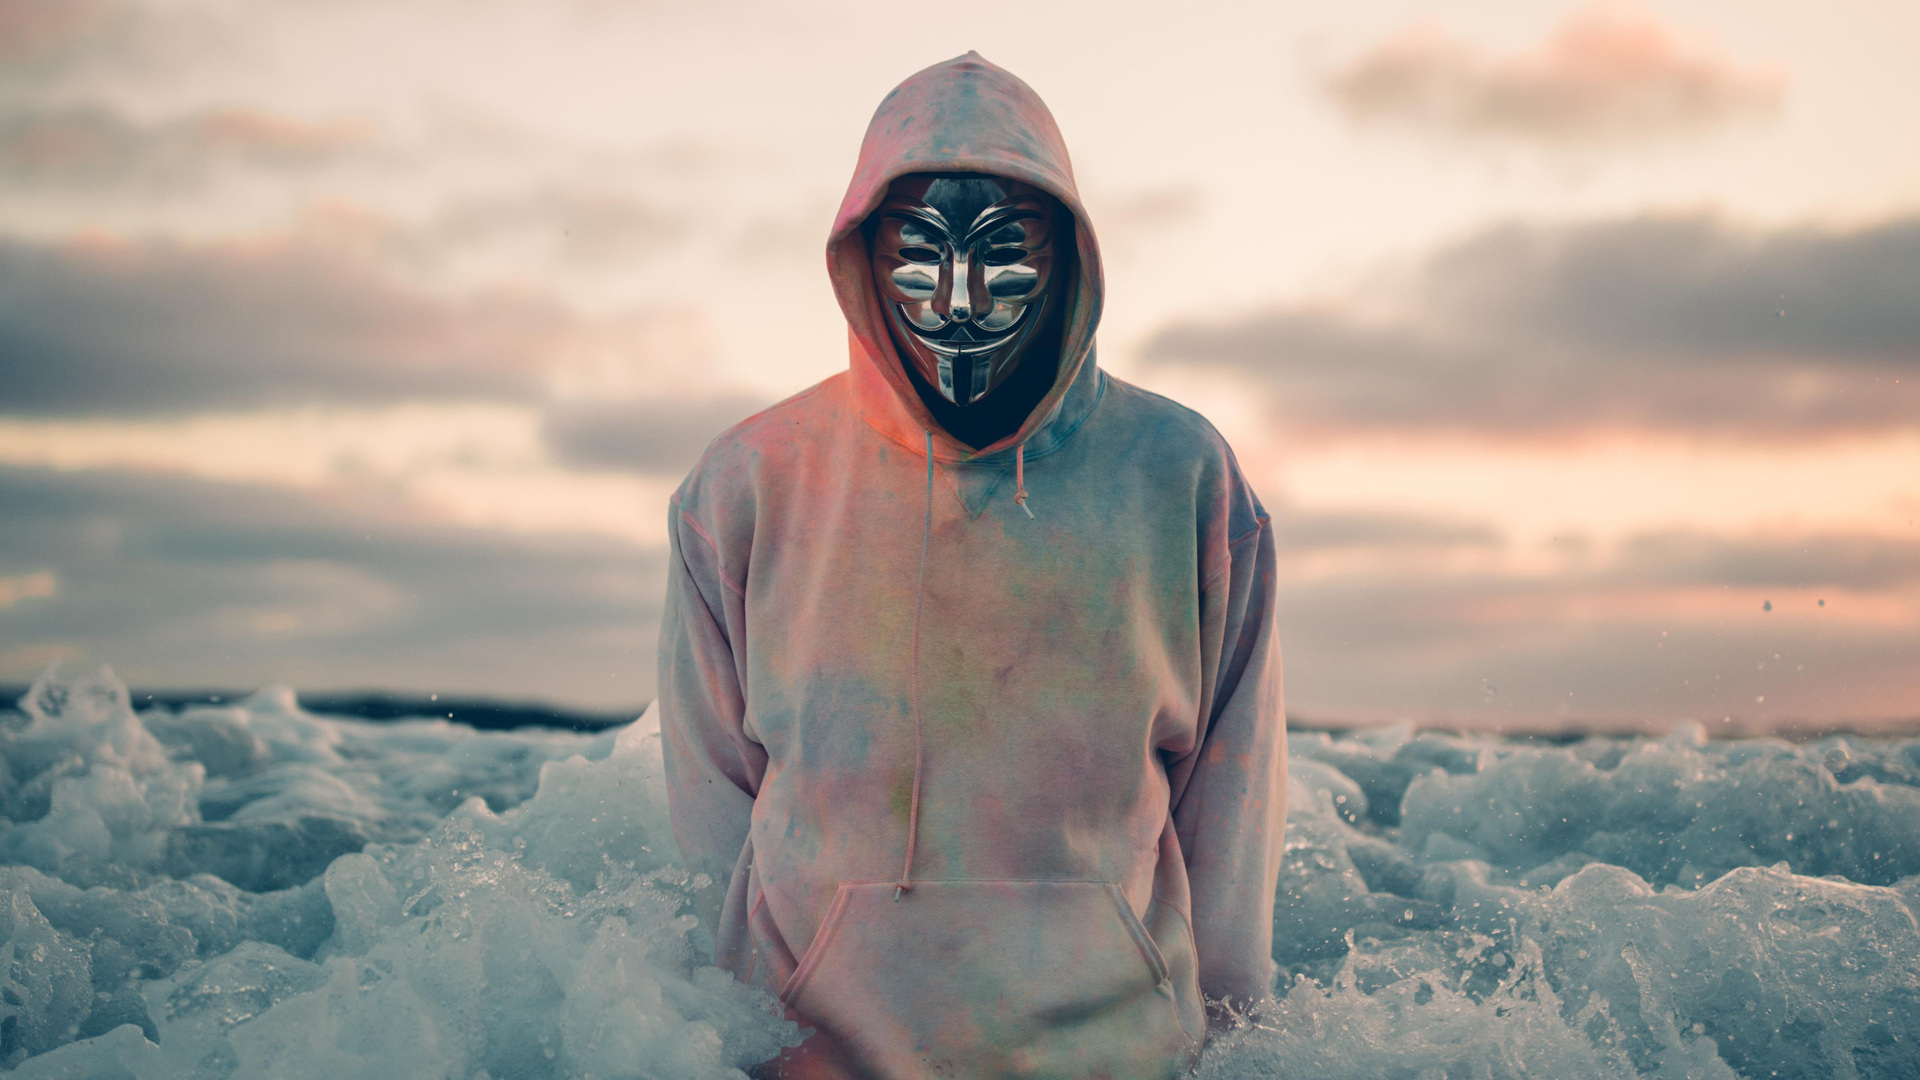 1920x1080 Anonymous Laptop Full Hd 1080p Hd 4k Wallpapers Images